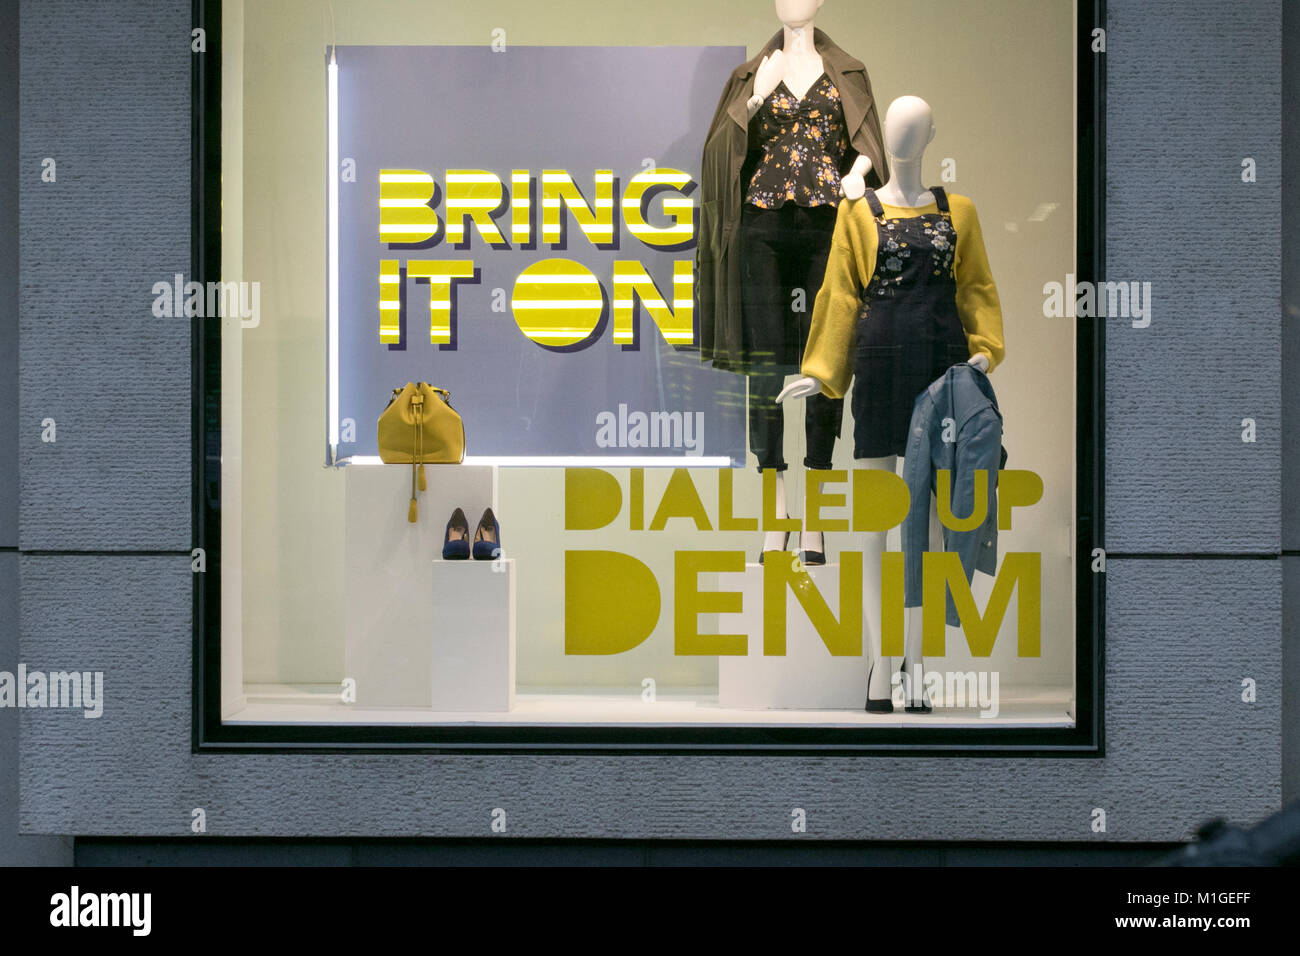 Clothing store shop window displays showing the latest retail products on sale, Liverpool, United Kingdom - Stock Image